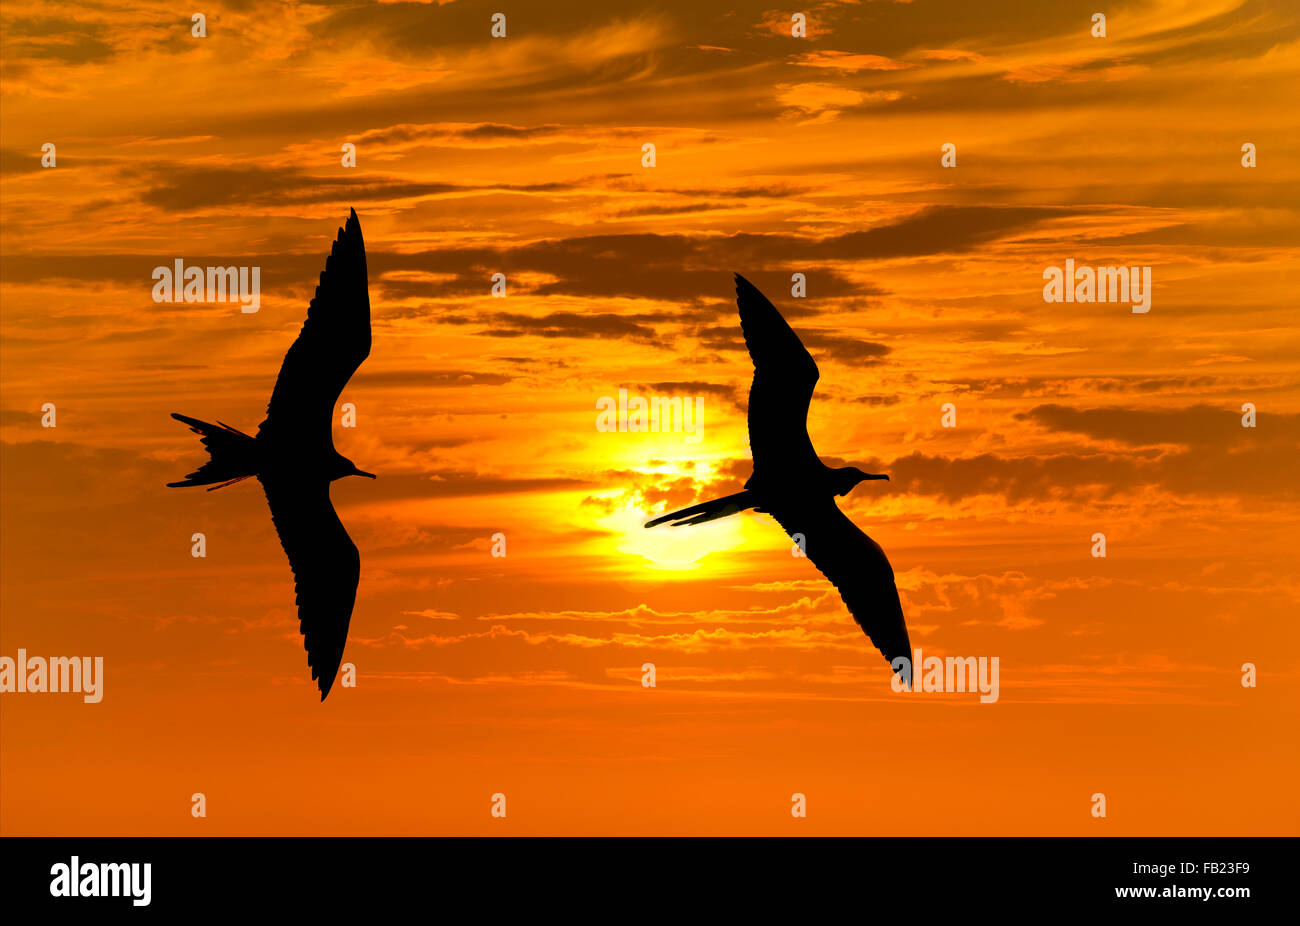 Birds silhouette is two bird flying against a vibrant bright sun orange sunset sky. - Stock Image